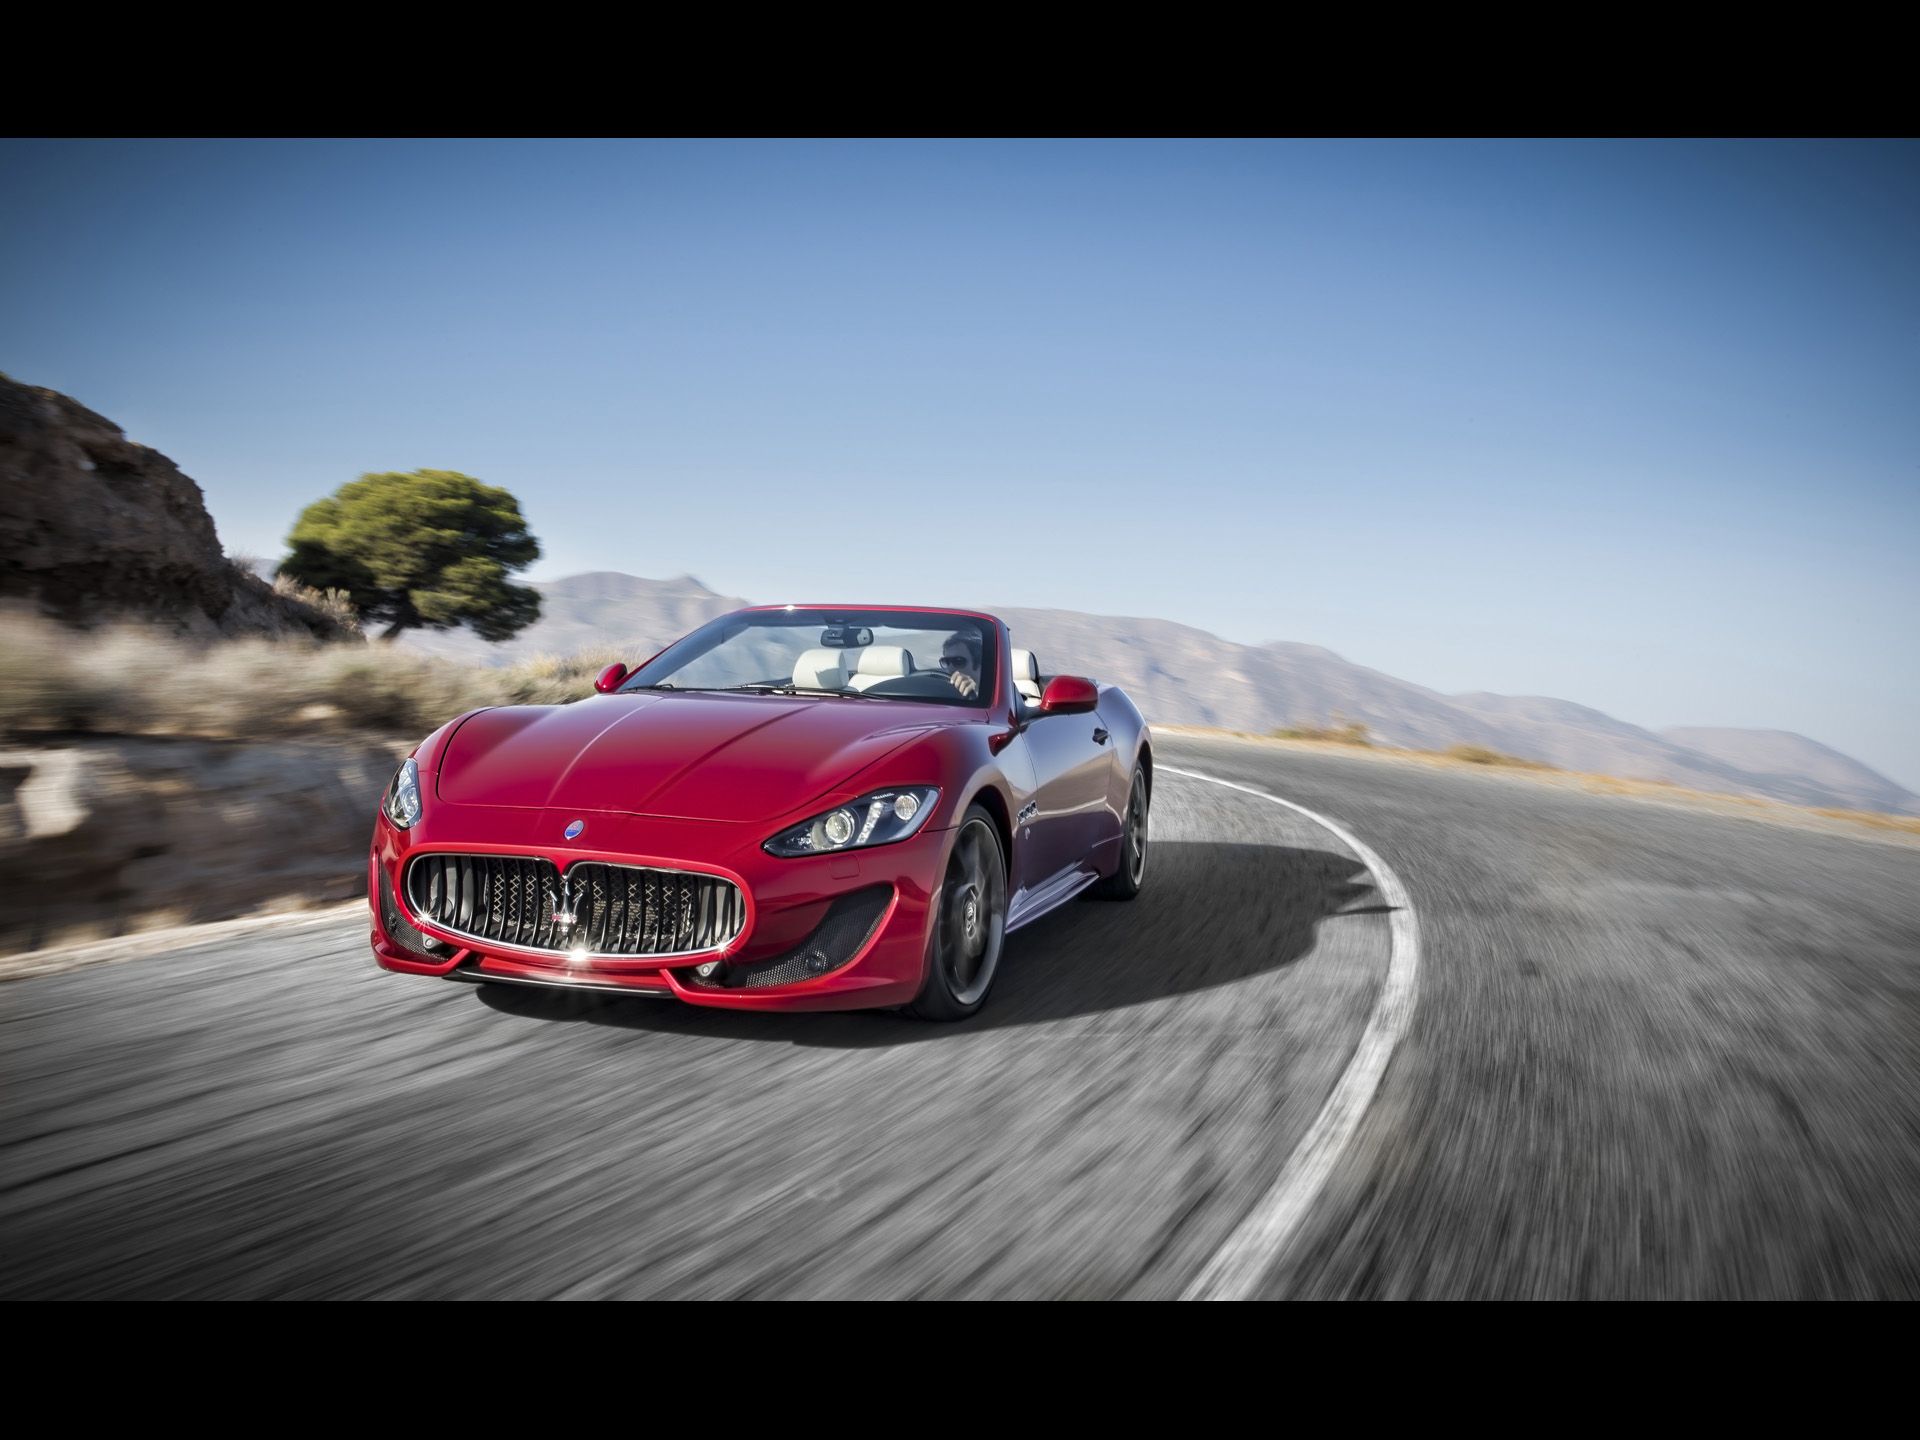 click to free download the wallpaper--World-Known Car Images of Maserati GranCabrio, the Decent Car Turning a Corner, Speed is Never Minused 1920X1440 free wallpaper download